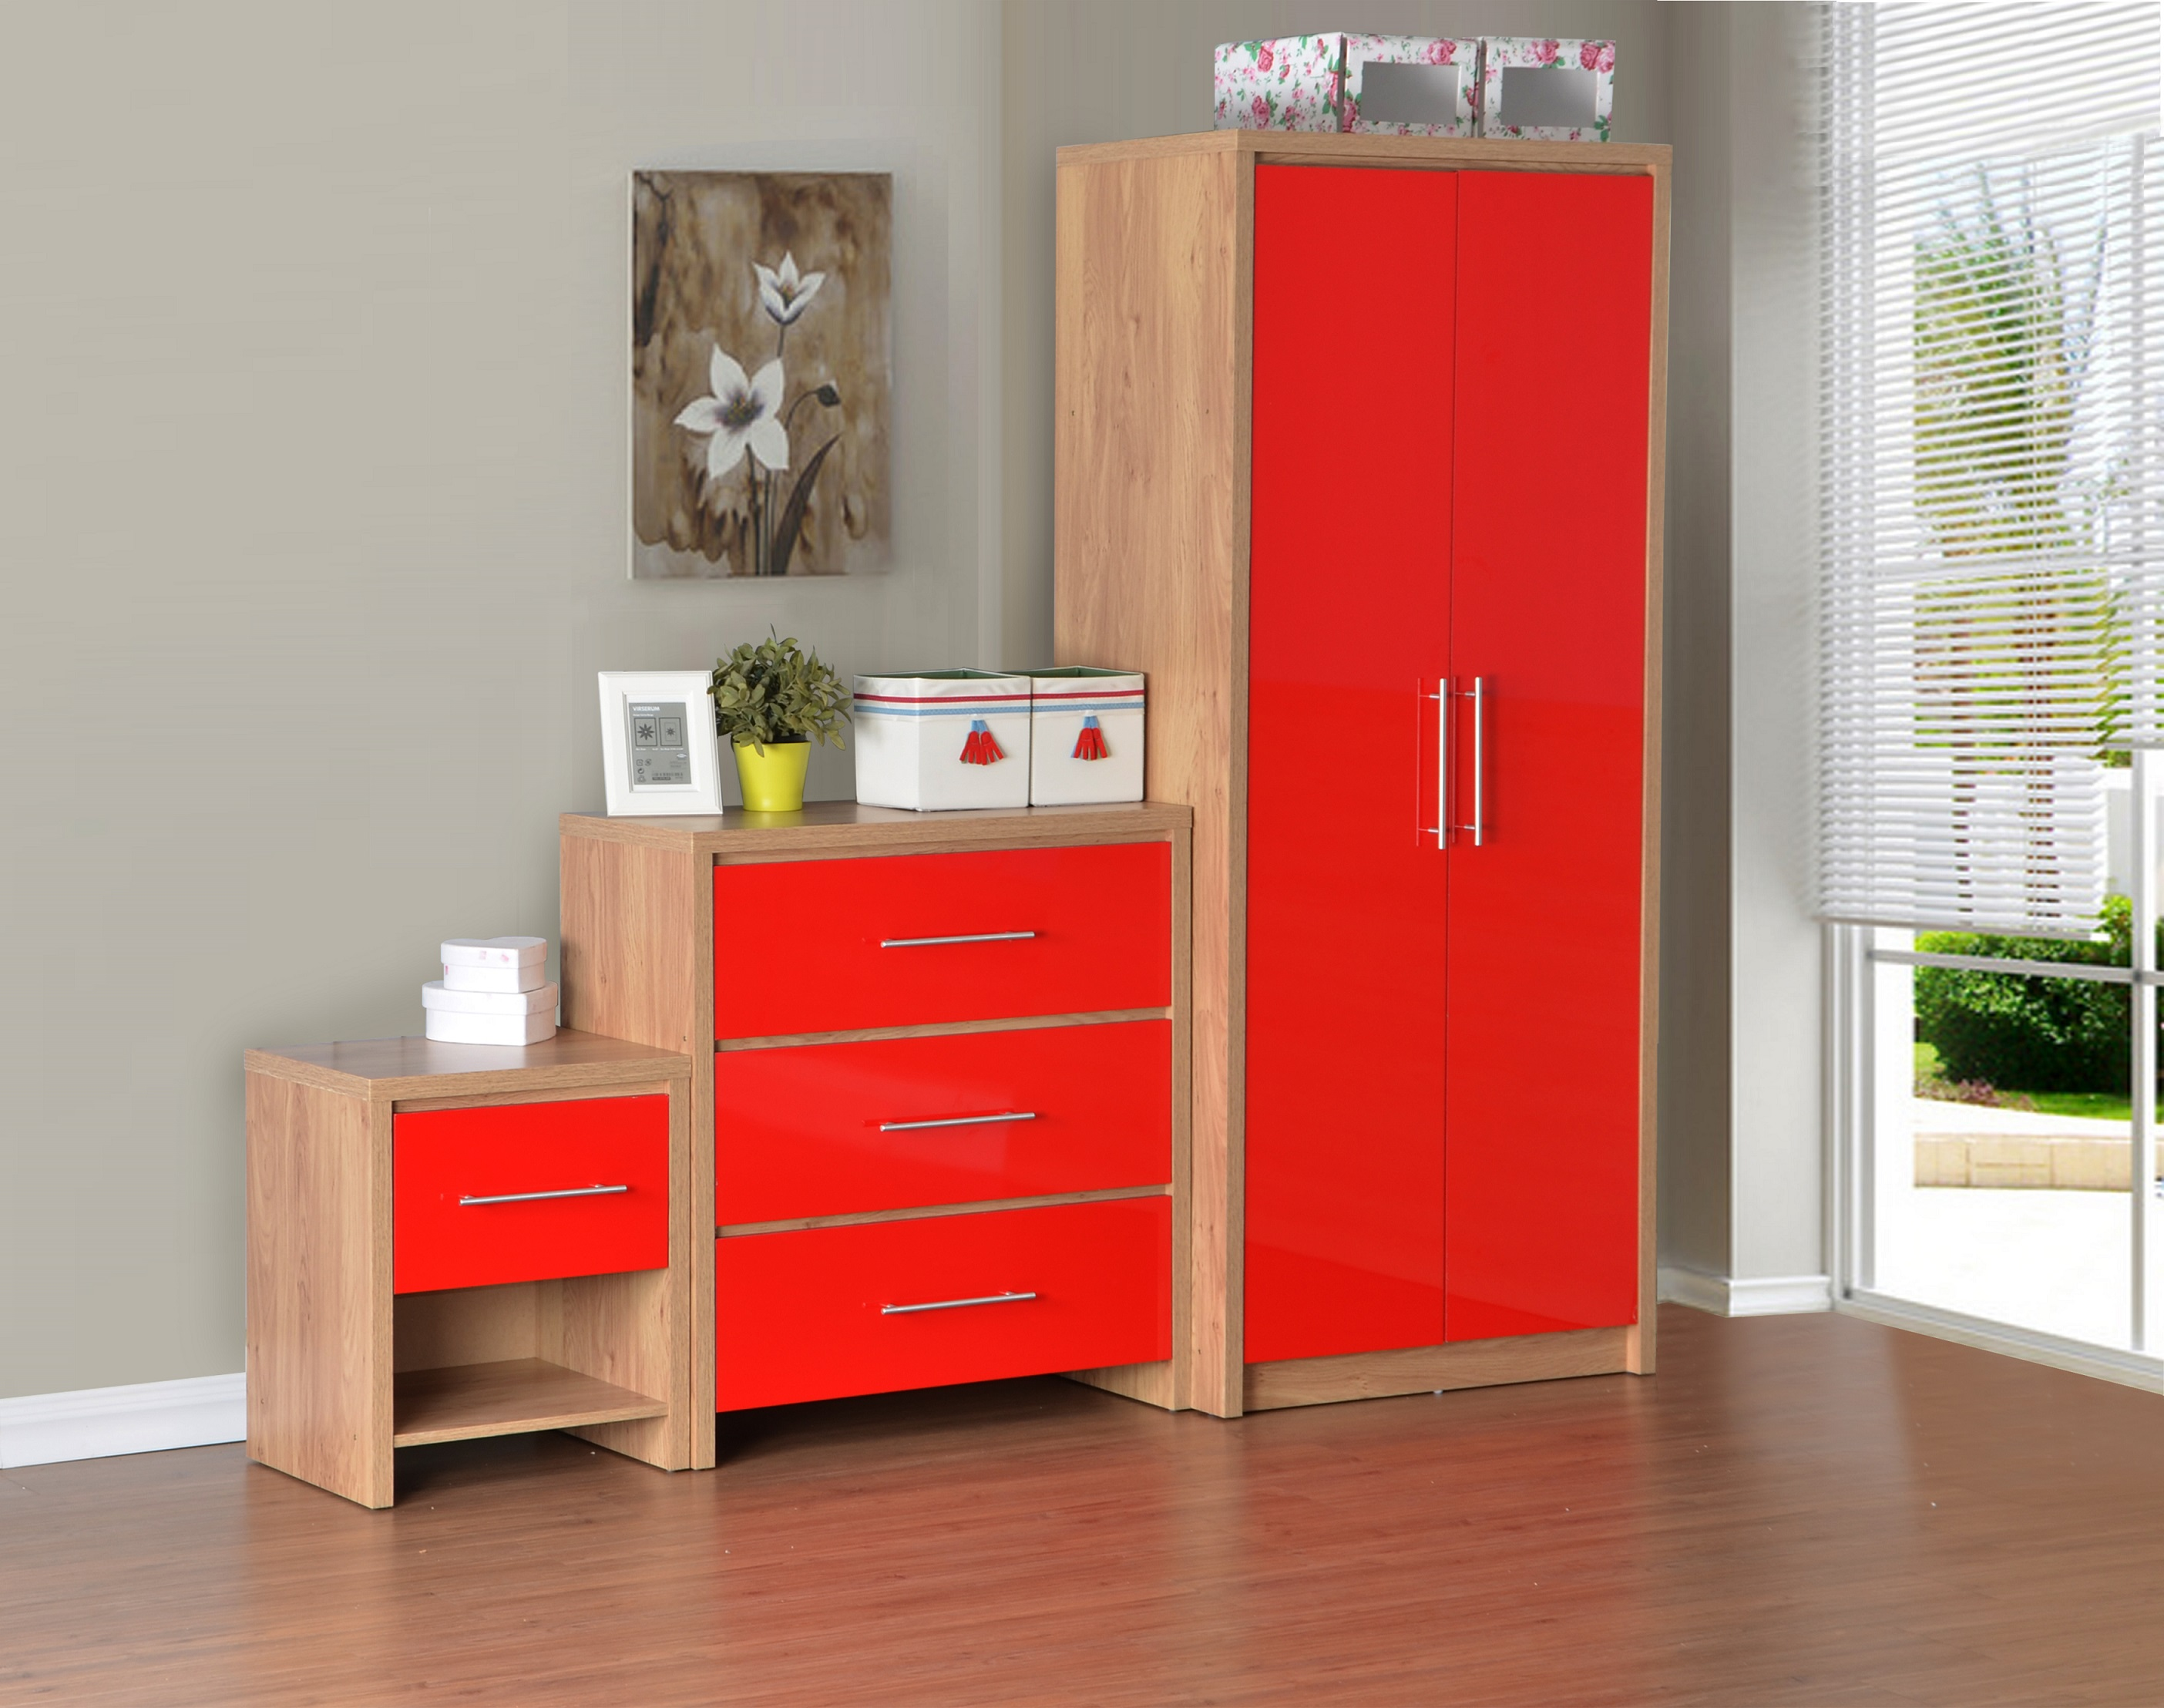 Amazing Seconique Seville Bedroom Furniture Oak/Red Gloss   Wardrobe Chest Bedside